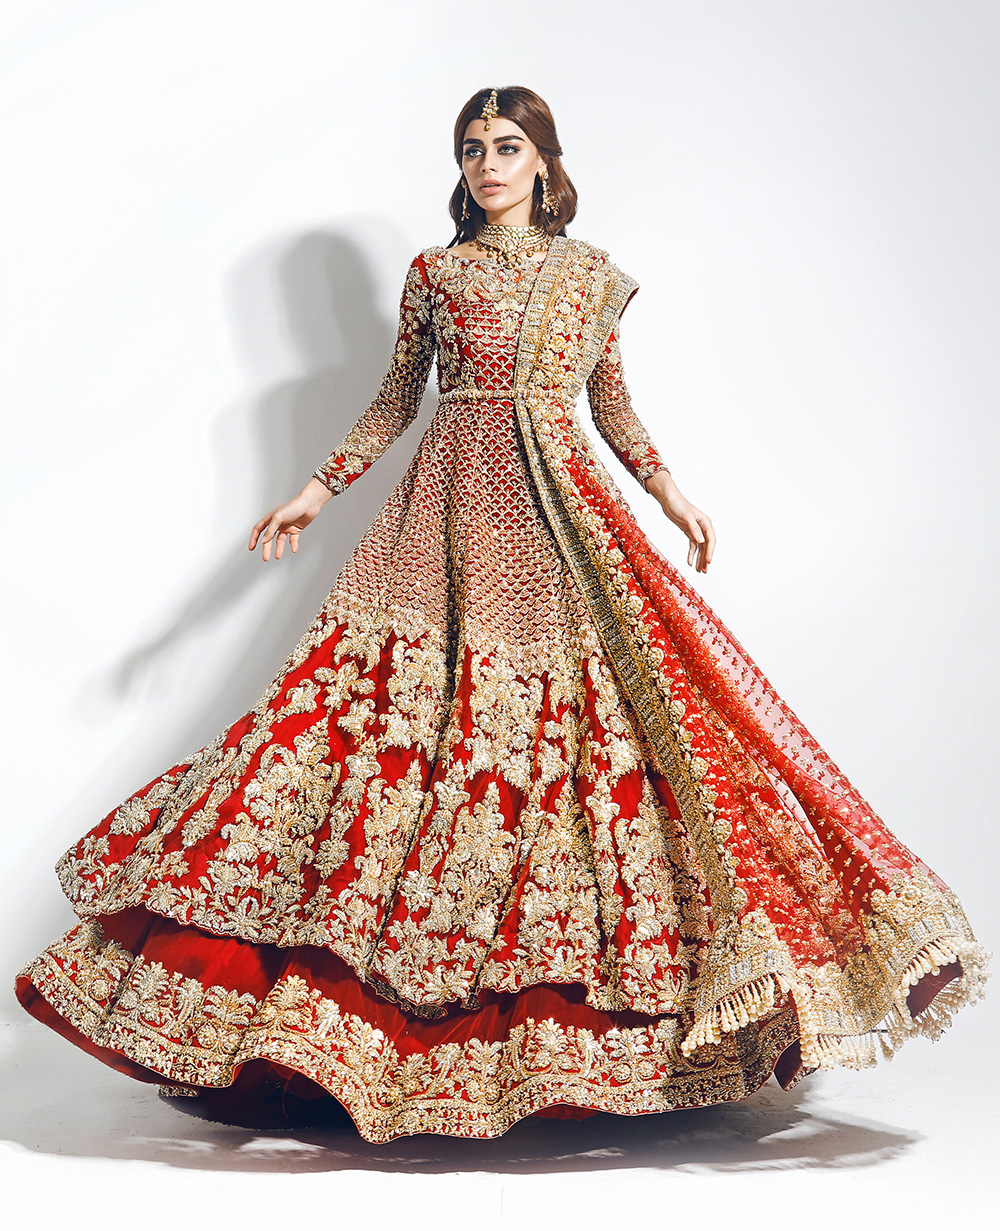 0d55de9a24 Pakistani Designer Dress Cost And Where To Buy Them In India ...